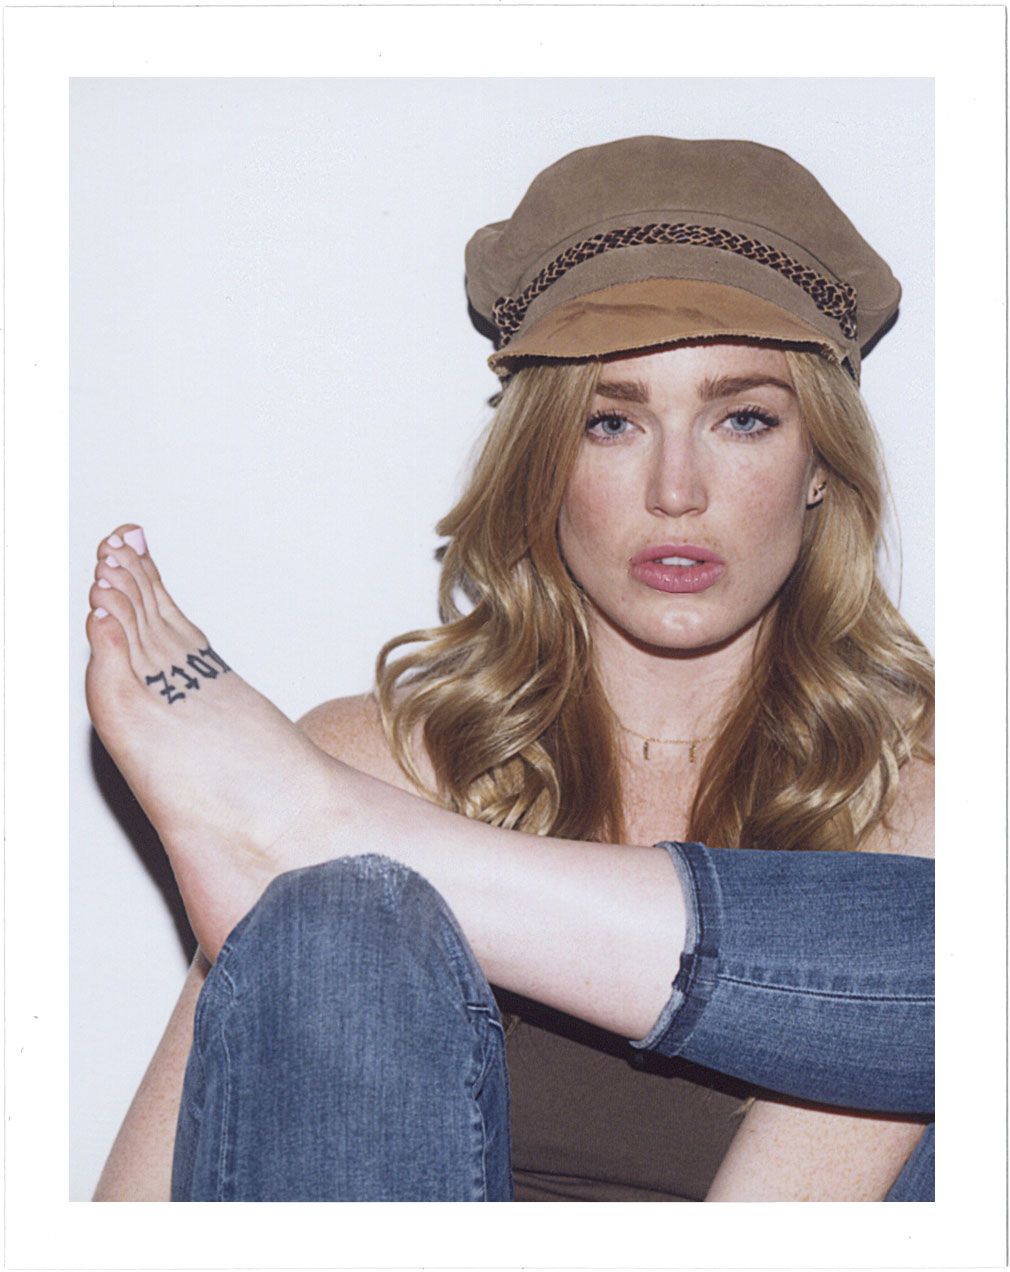 Actress Caity Lotz for Nice People Only Influencer Project by Jane Smith Creative Agency